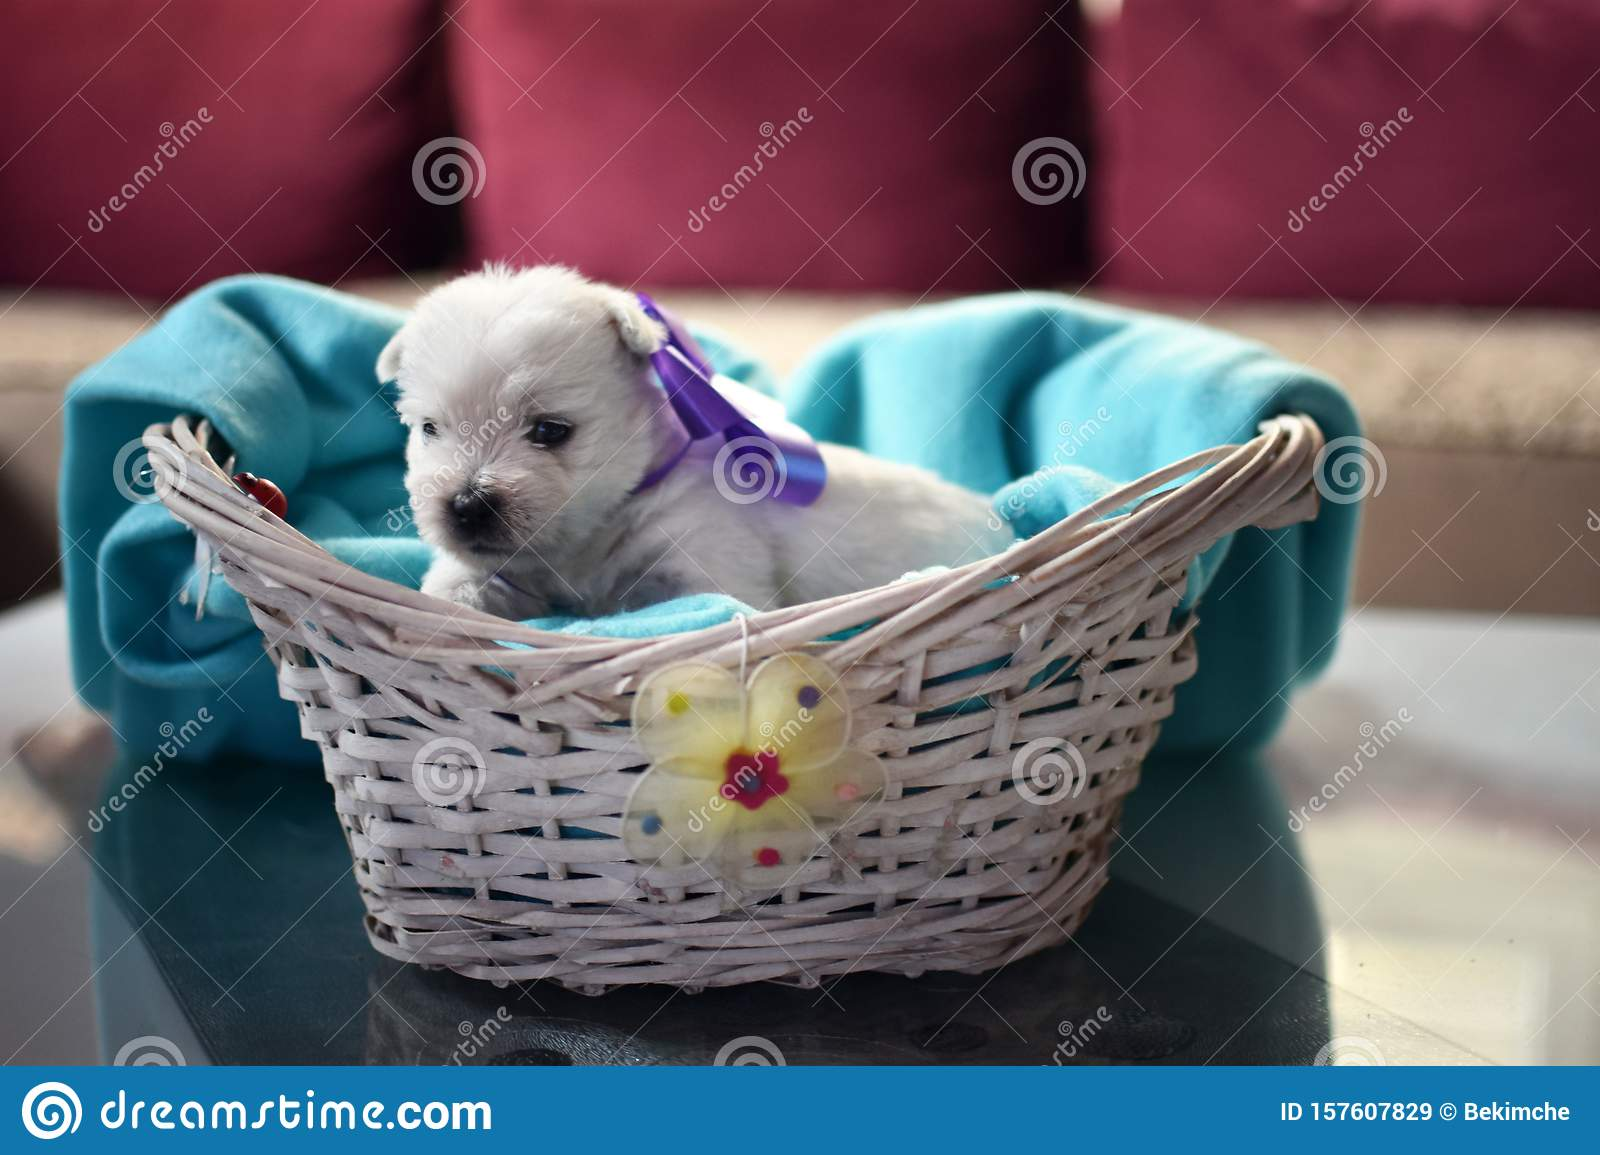 West Highland White Terrier Westie Puppies Stock Image Image Of Puppies Puppy 157607829